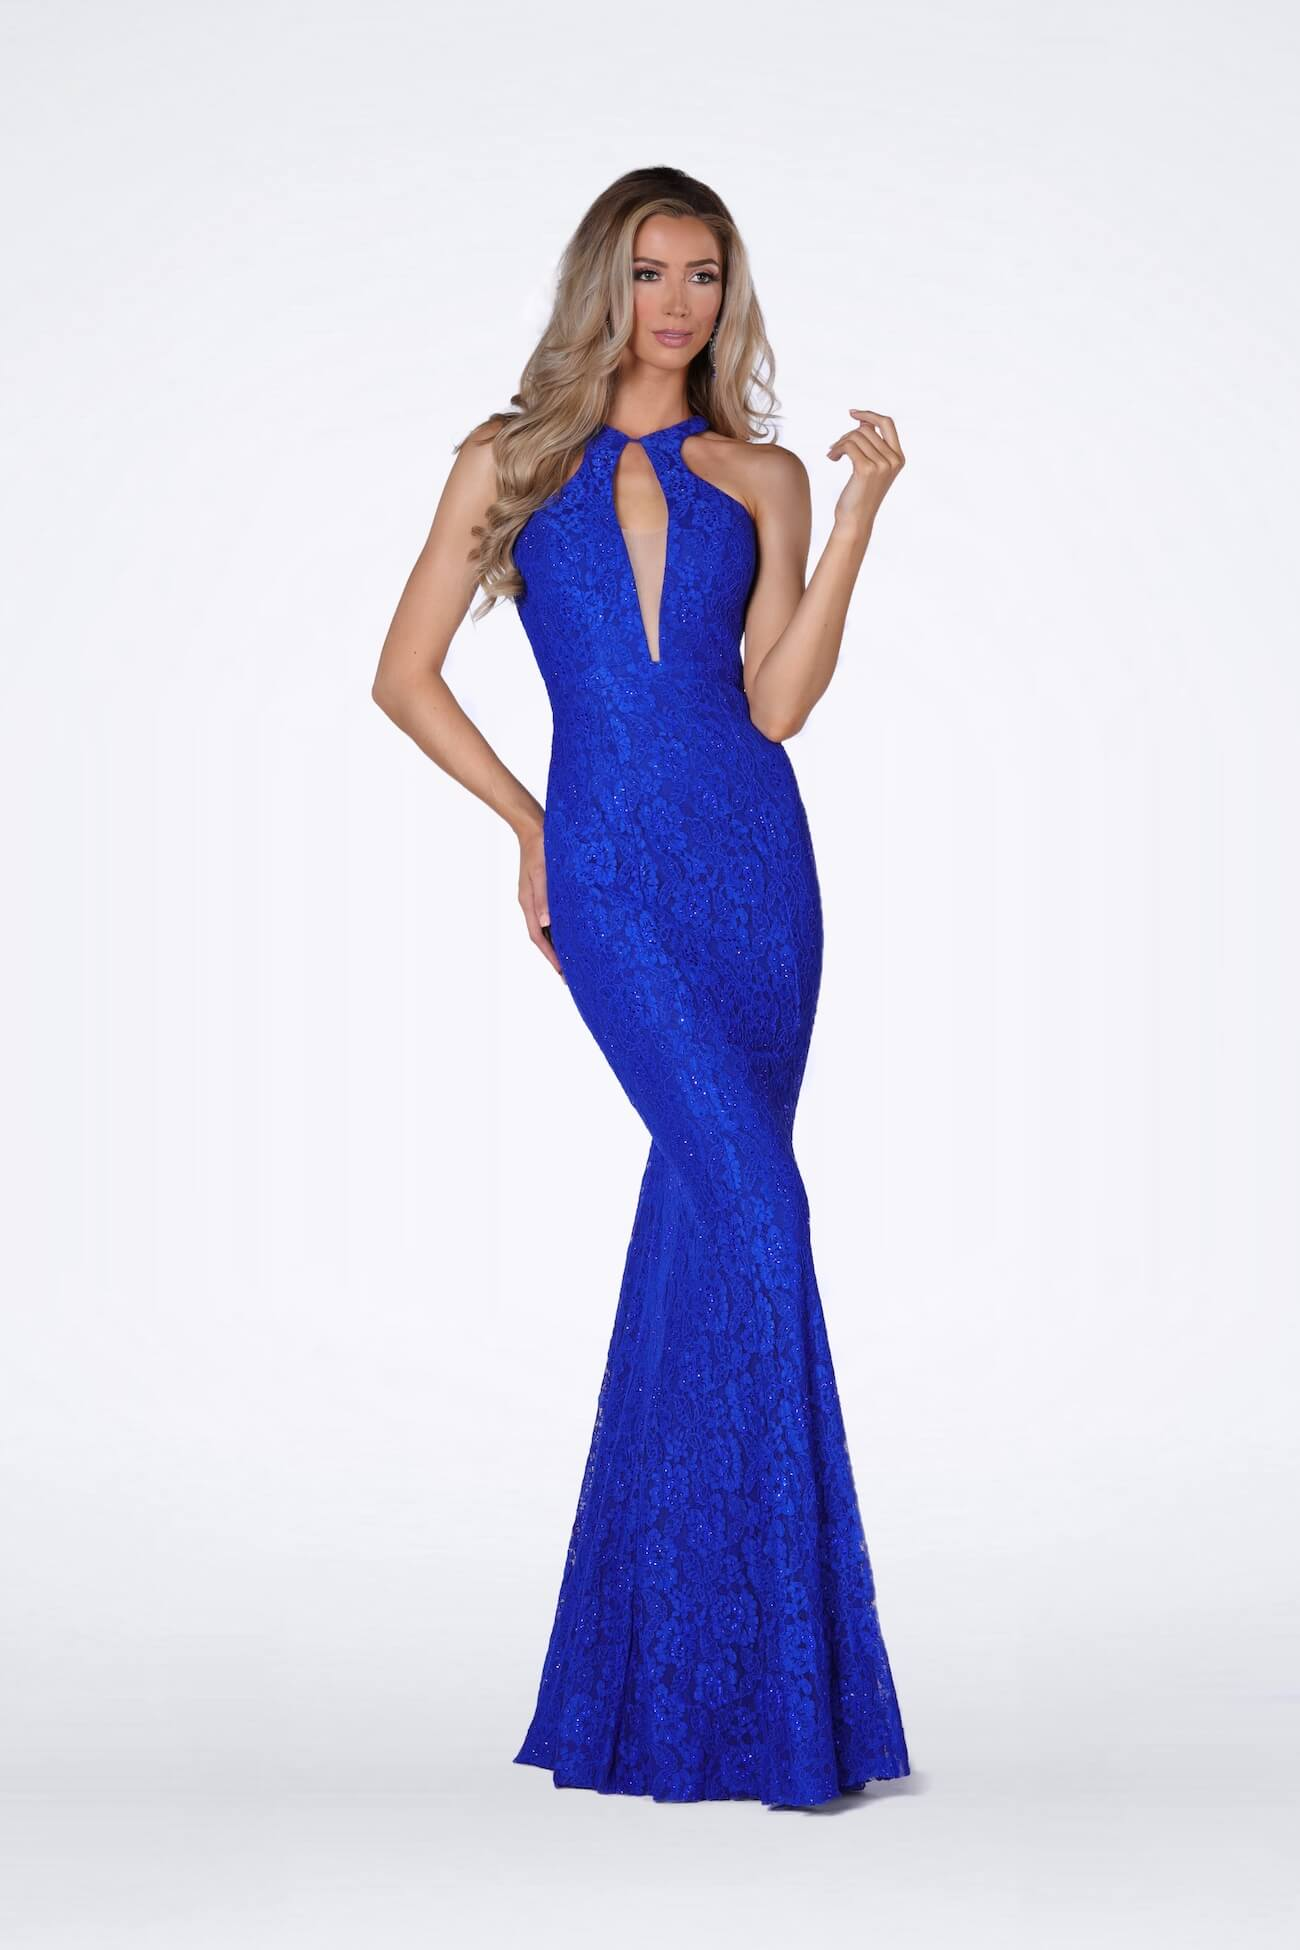 Vienna Blue Size 4 Lace Backless Mermaid Dress on Queenly